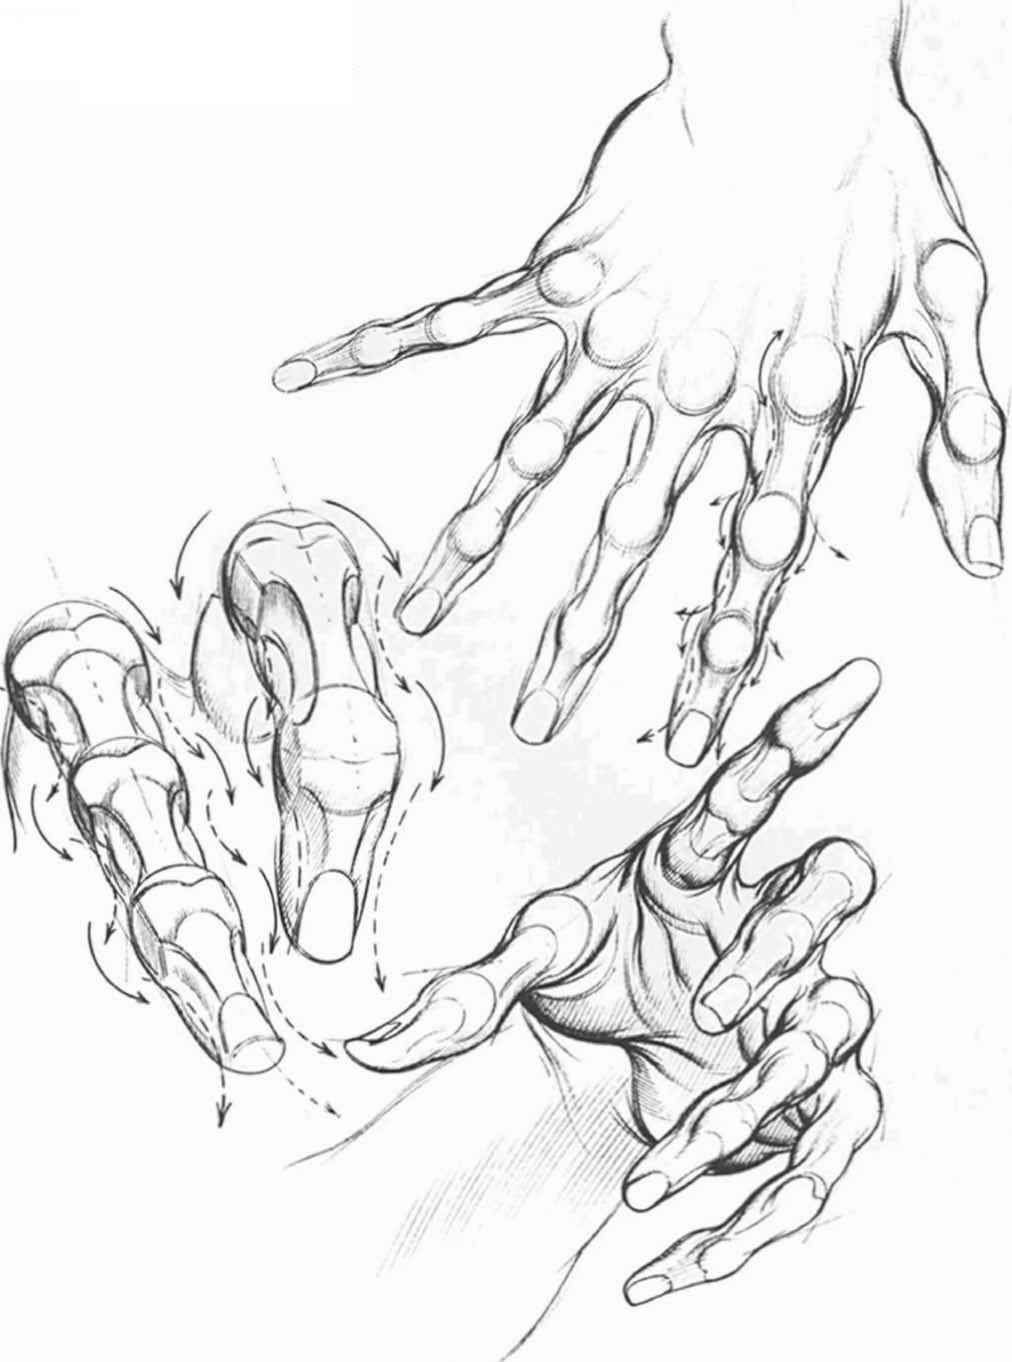 1012x1362 Human Muscle Drawings Comics Hand Research Muscles